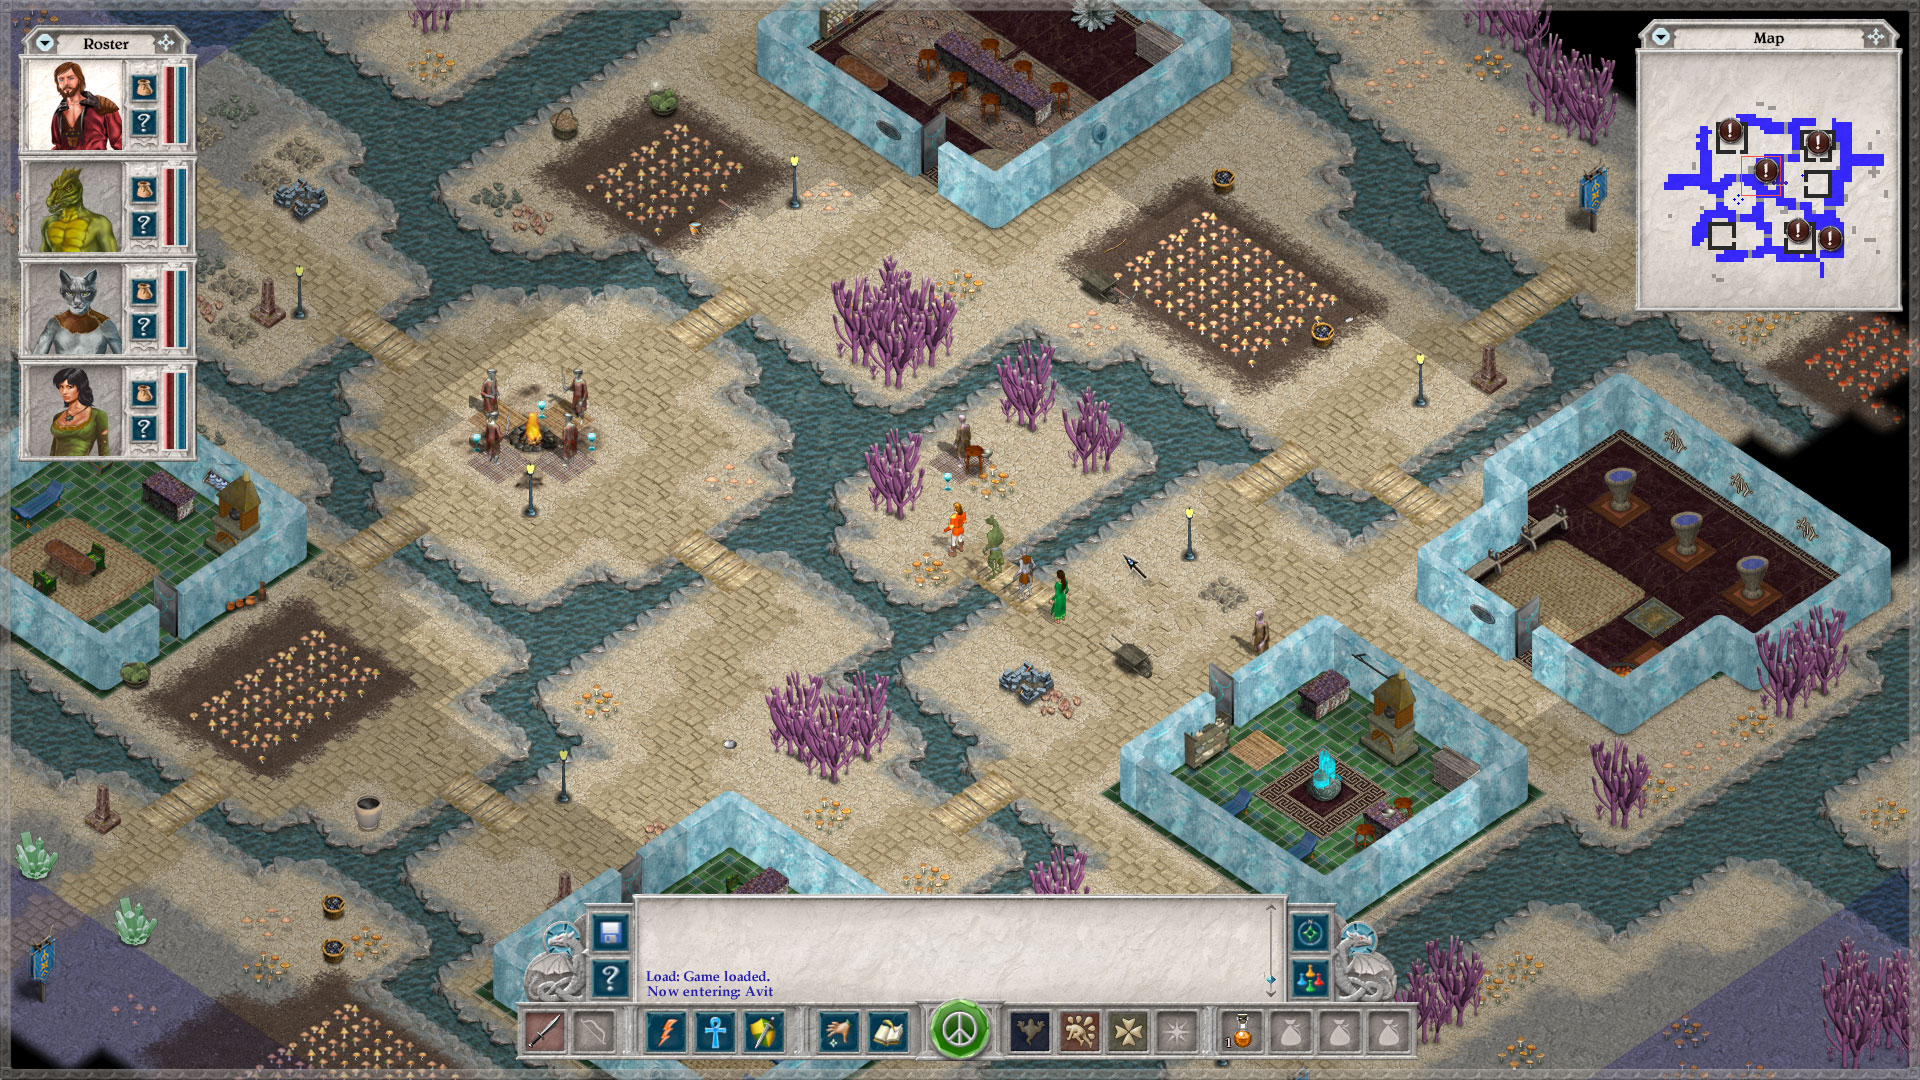 Old-school RPG Avernum 2: Crystal Souls dungeon crawls on to iPad on